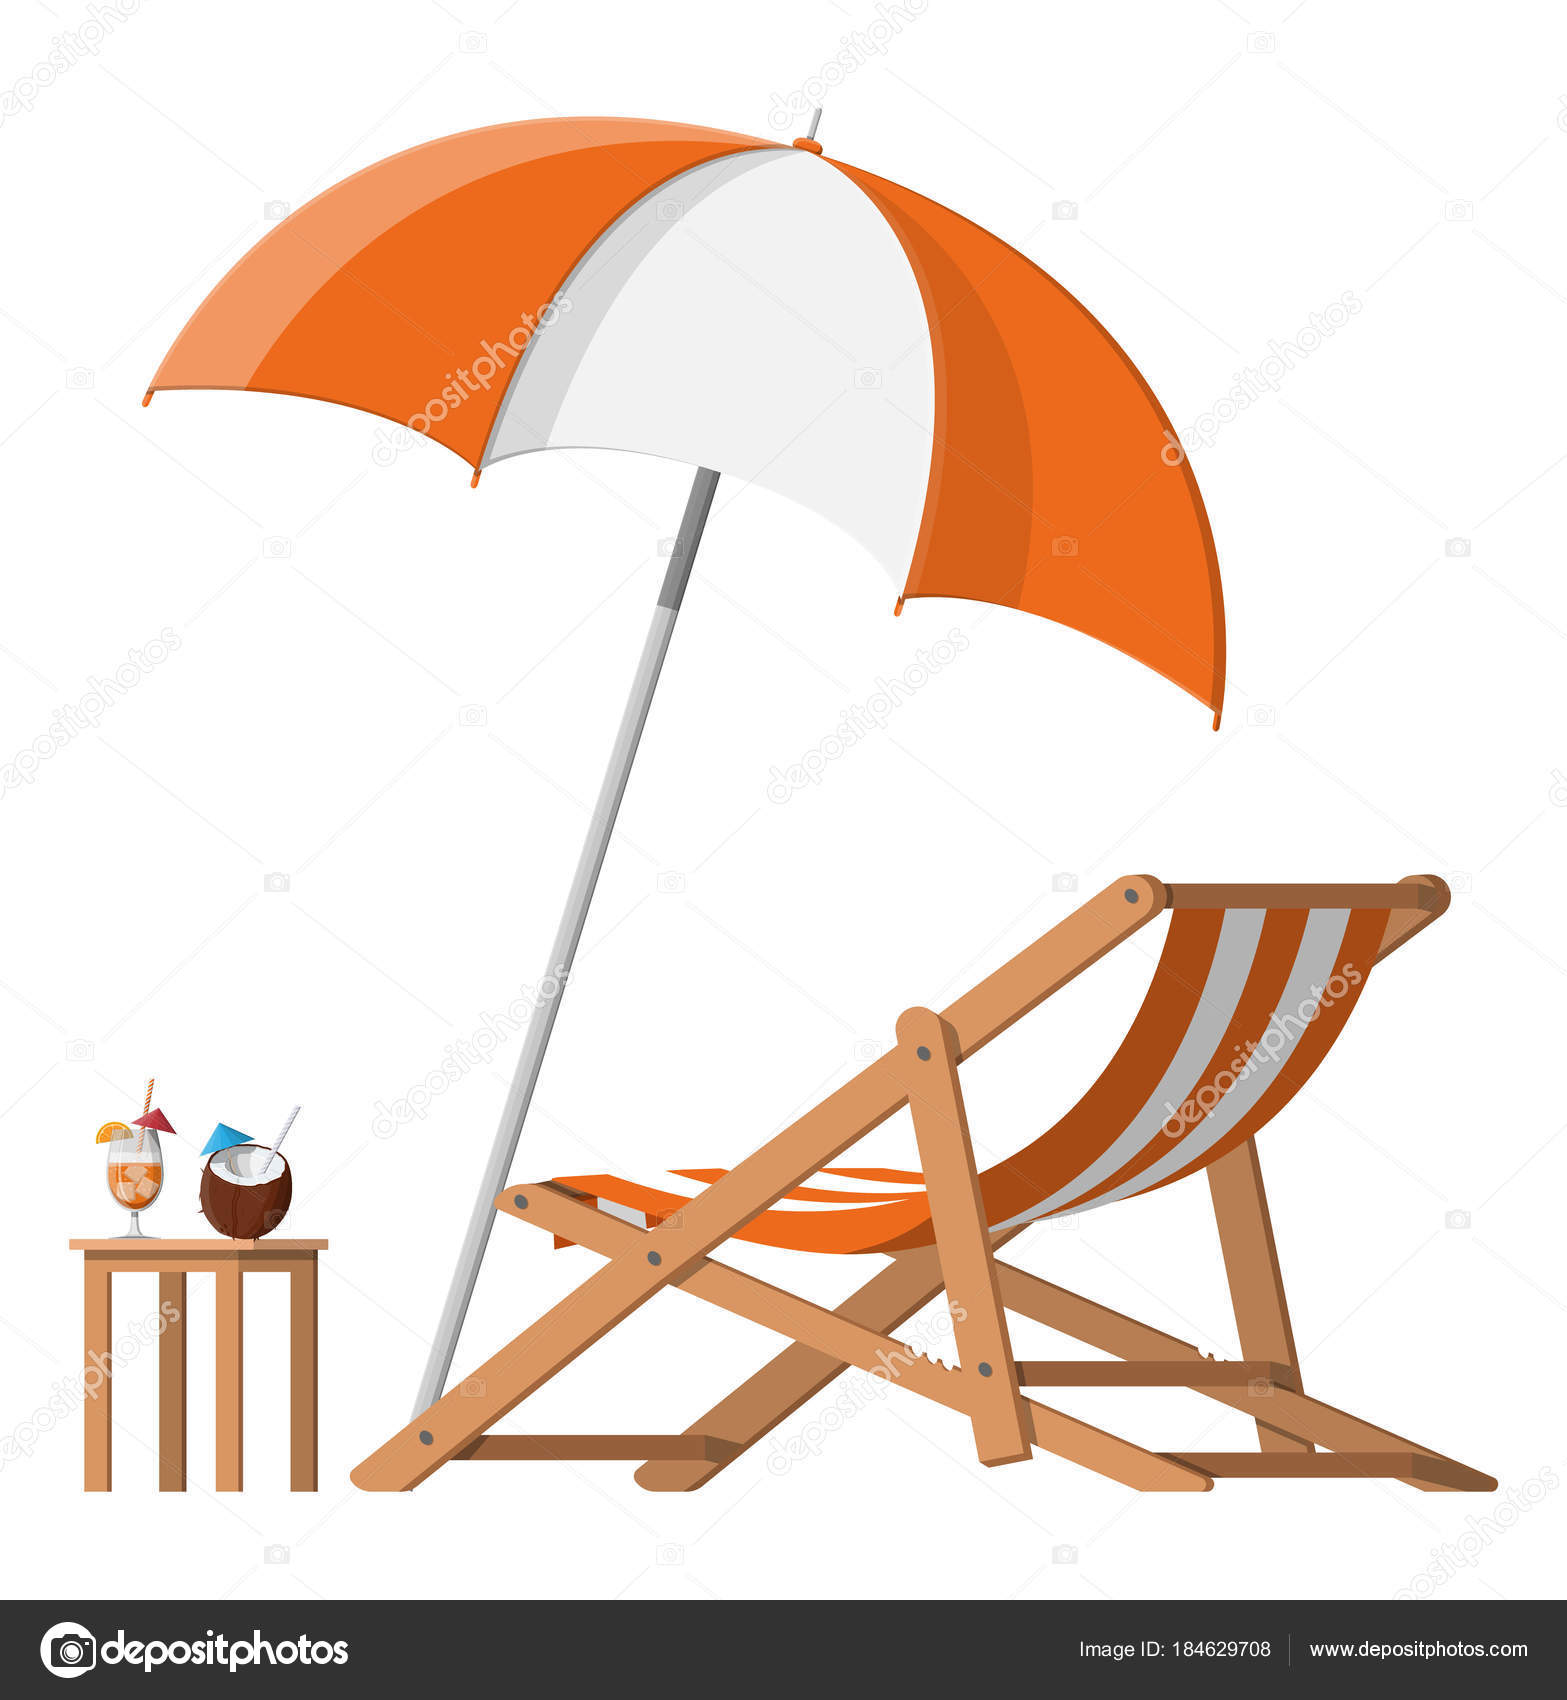 Chaise Cocktail Wooden Chaise Lounge Umbrella Cocktail Stock Vector Abscent